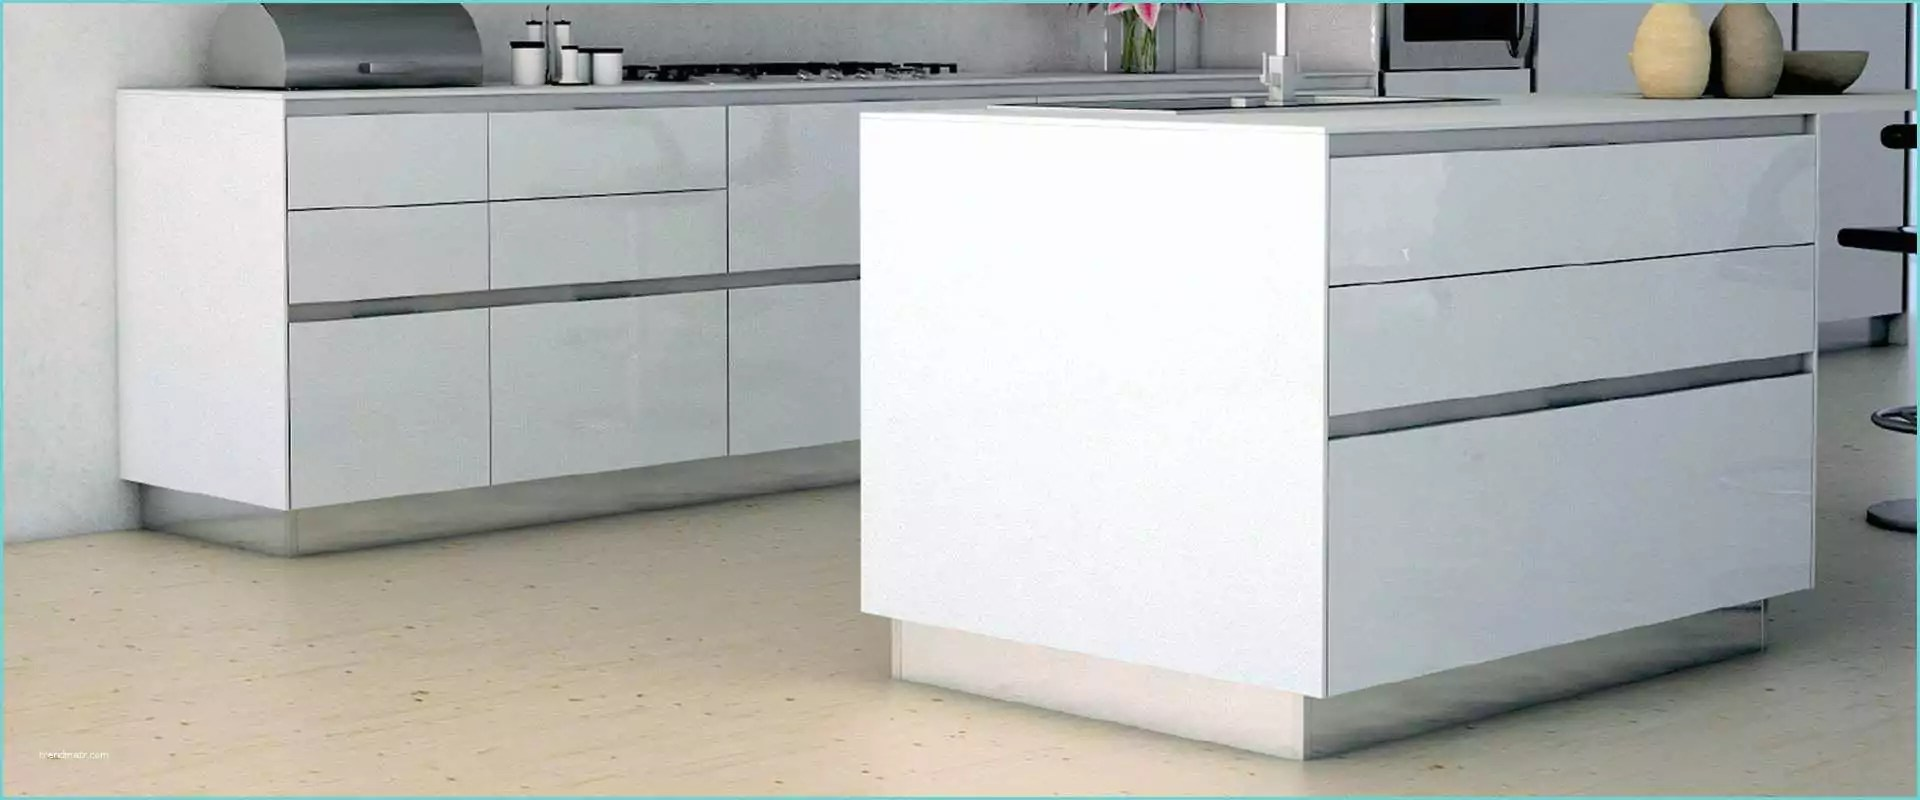 Stunning Ikea Zoccolo Cucina Gallery - Lepicentre.info - lepicentre.info